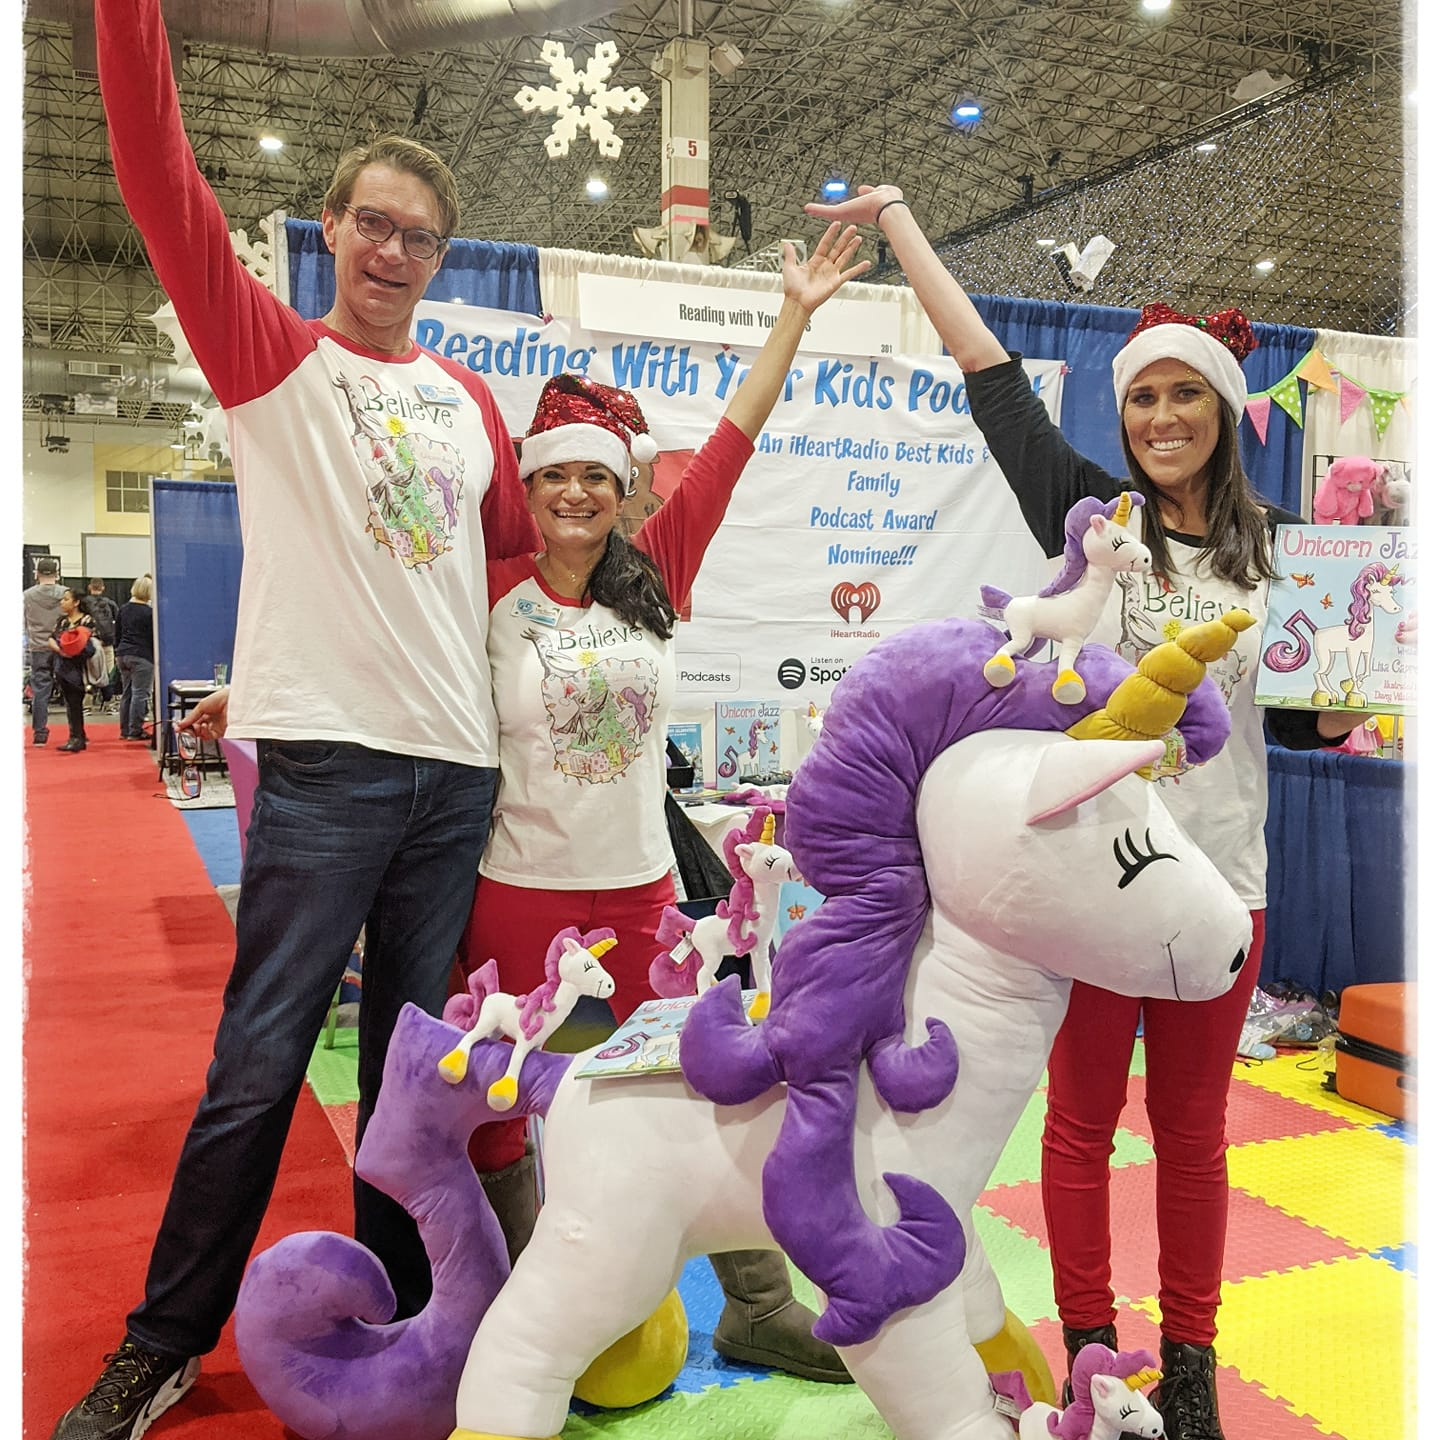 Giant unicorn with purple tail musical note